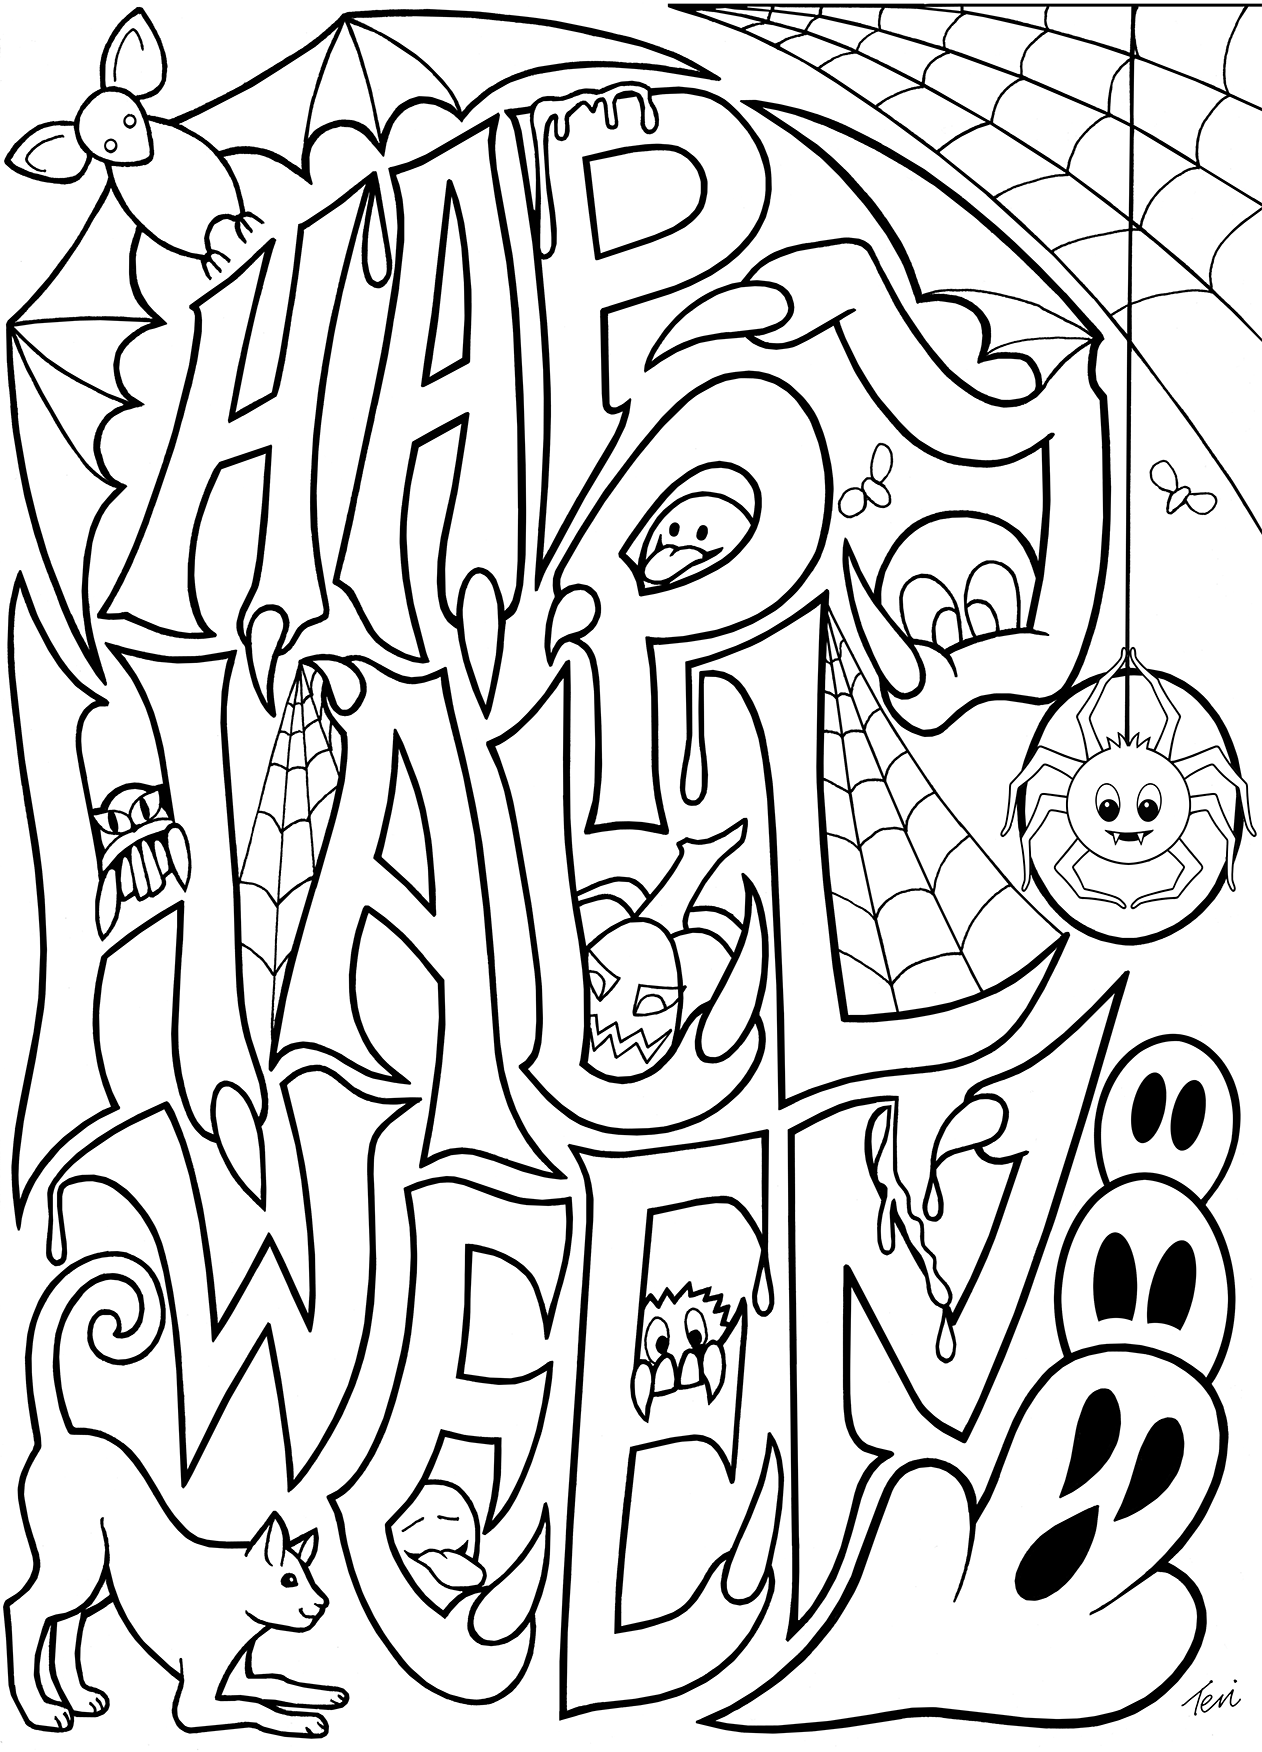 colouring pages for halloween free printable halloween coloring pages getcoloringpagescom pages halloween for printable free colouring